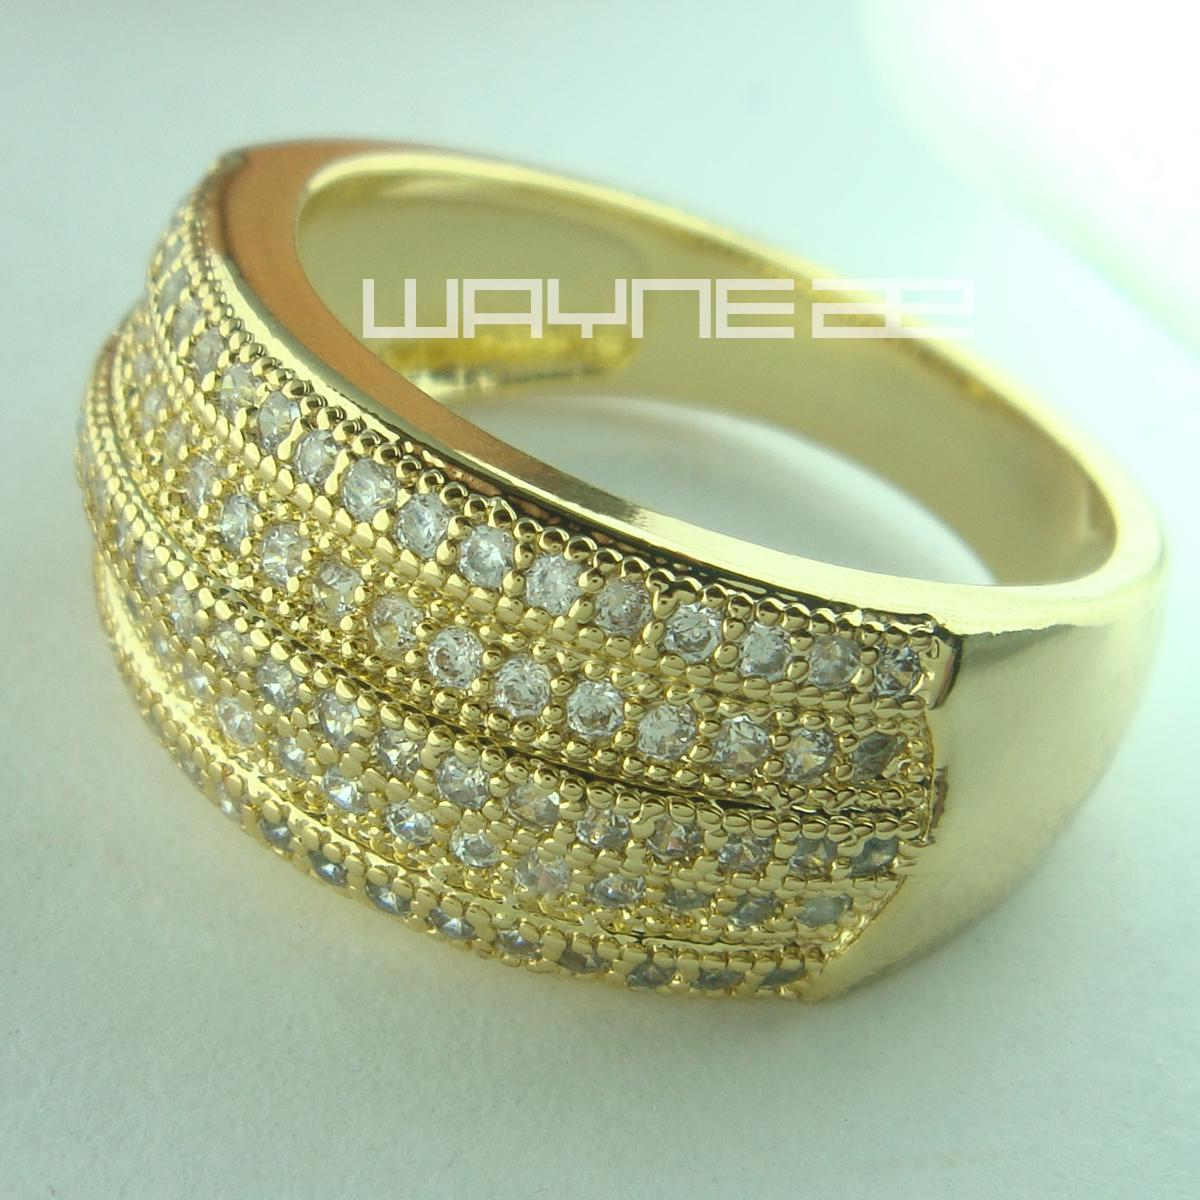 2e59ddb378eec 18ct gold GF engagement wedding womens solid ring R155 band size8-9